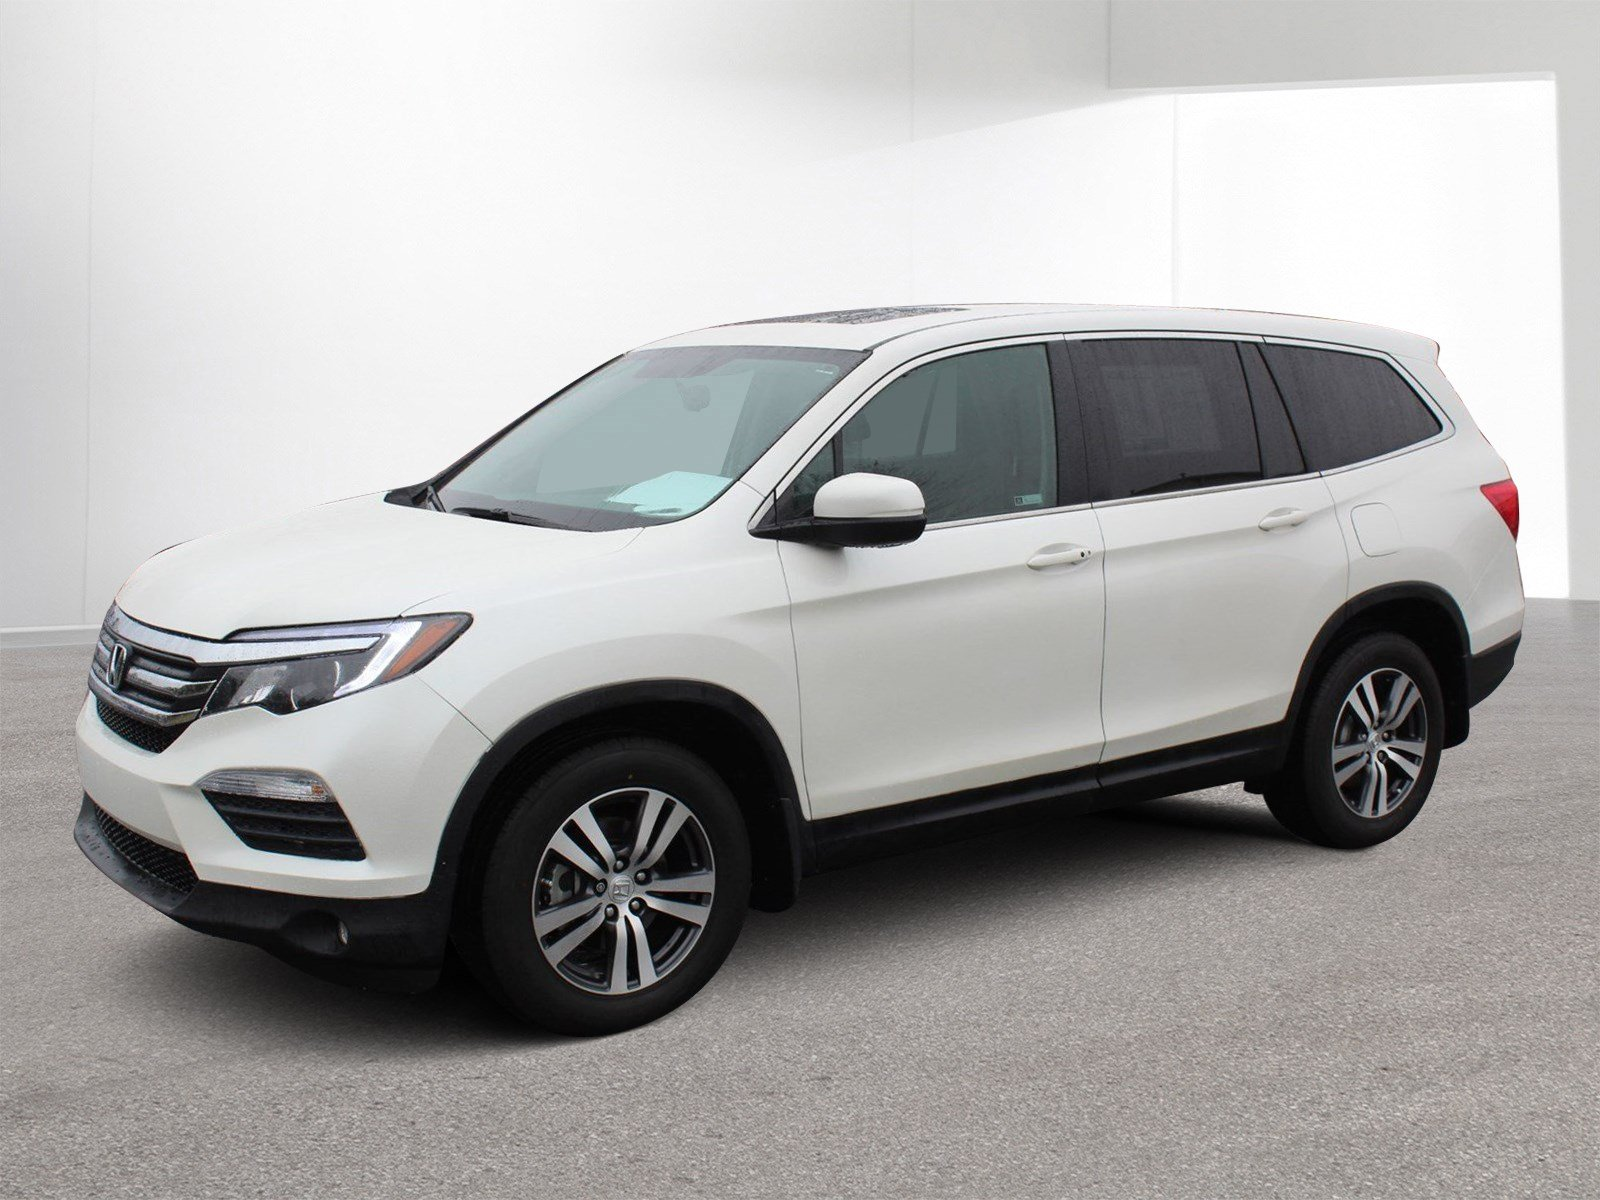 Used 2018 Honda Pilot For Sale Milledgeville Ga Gray Hx7623